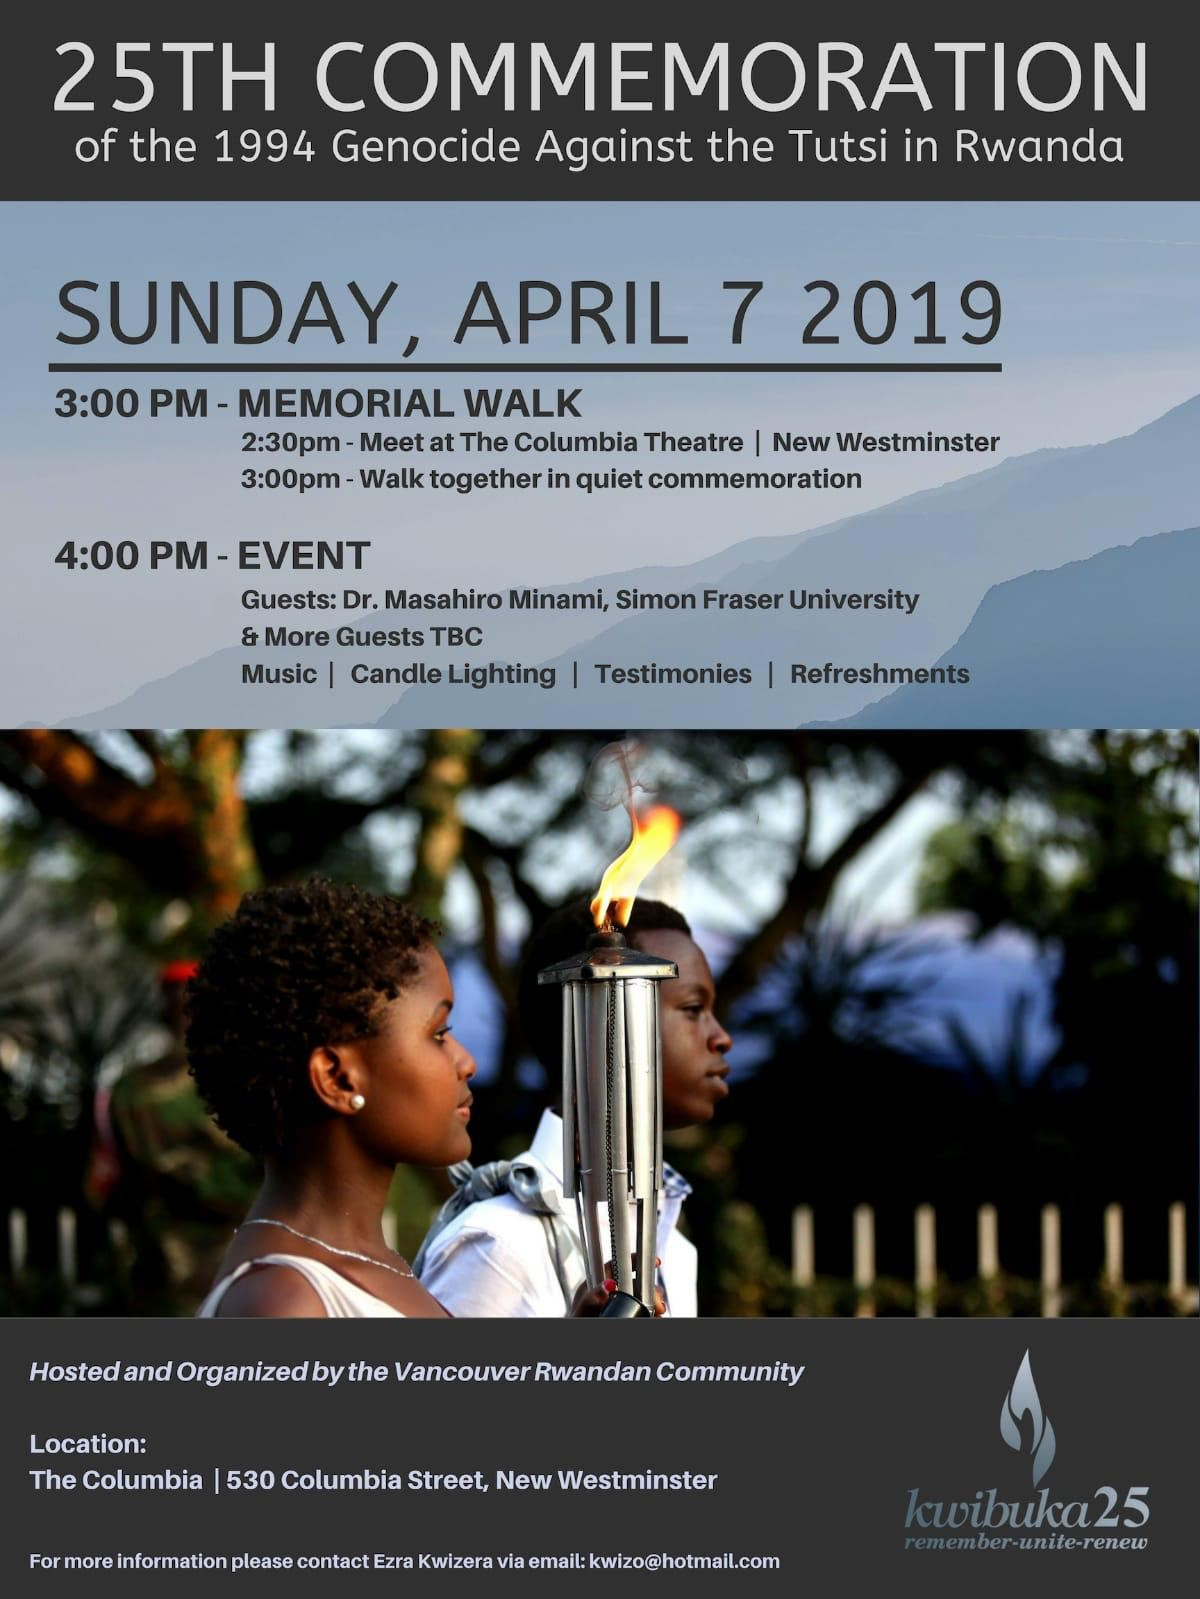 Rwandan expats gather for memorial 25 years after beginning of genocide